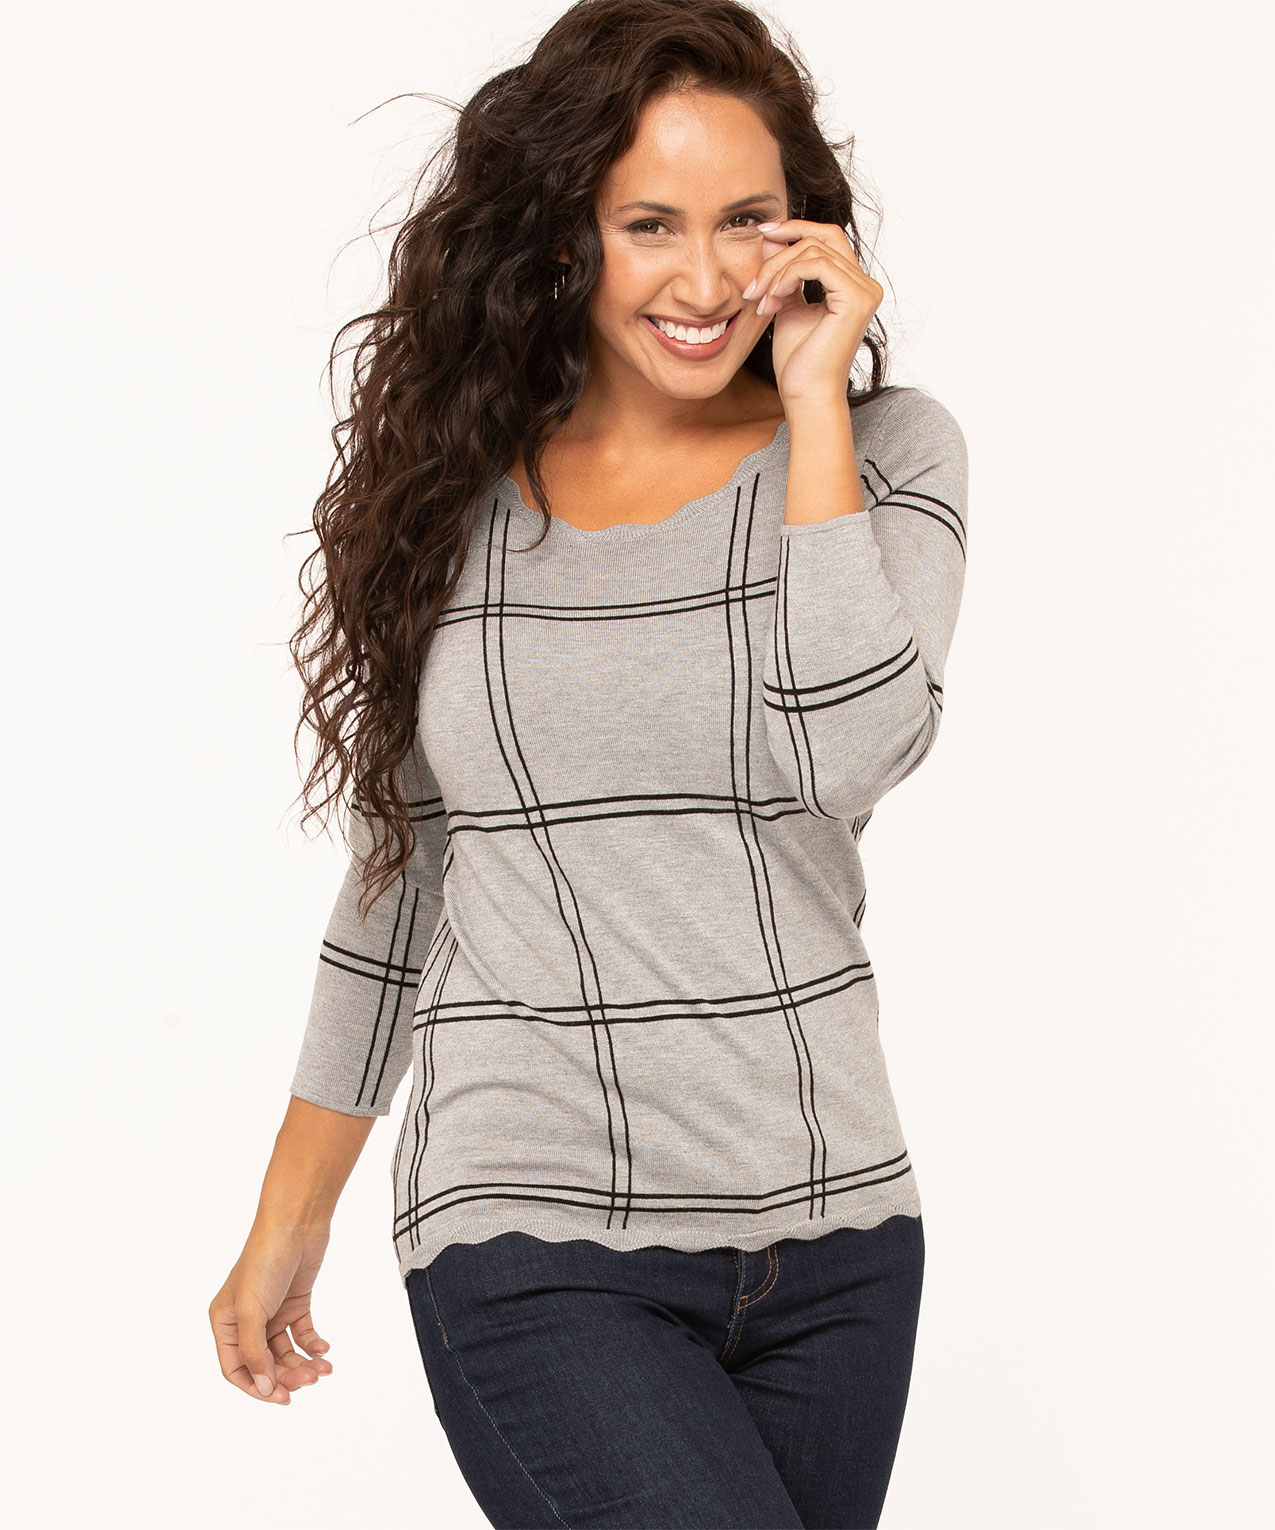 Scallop Edge Essential Sweater, Grey, hi-res